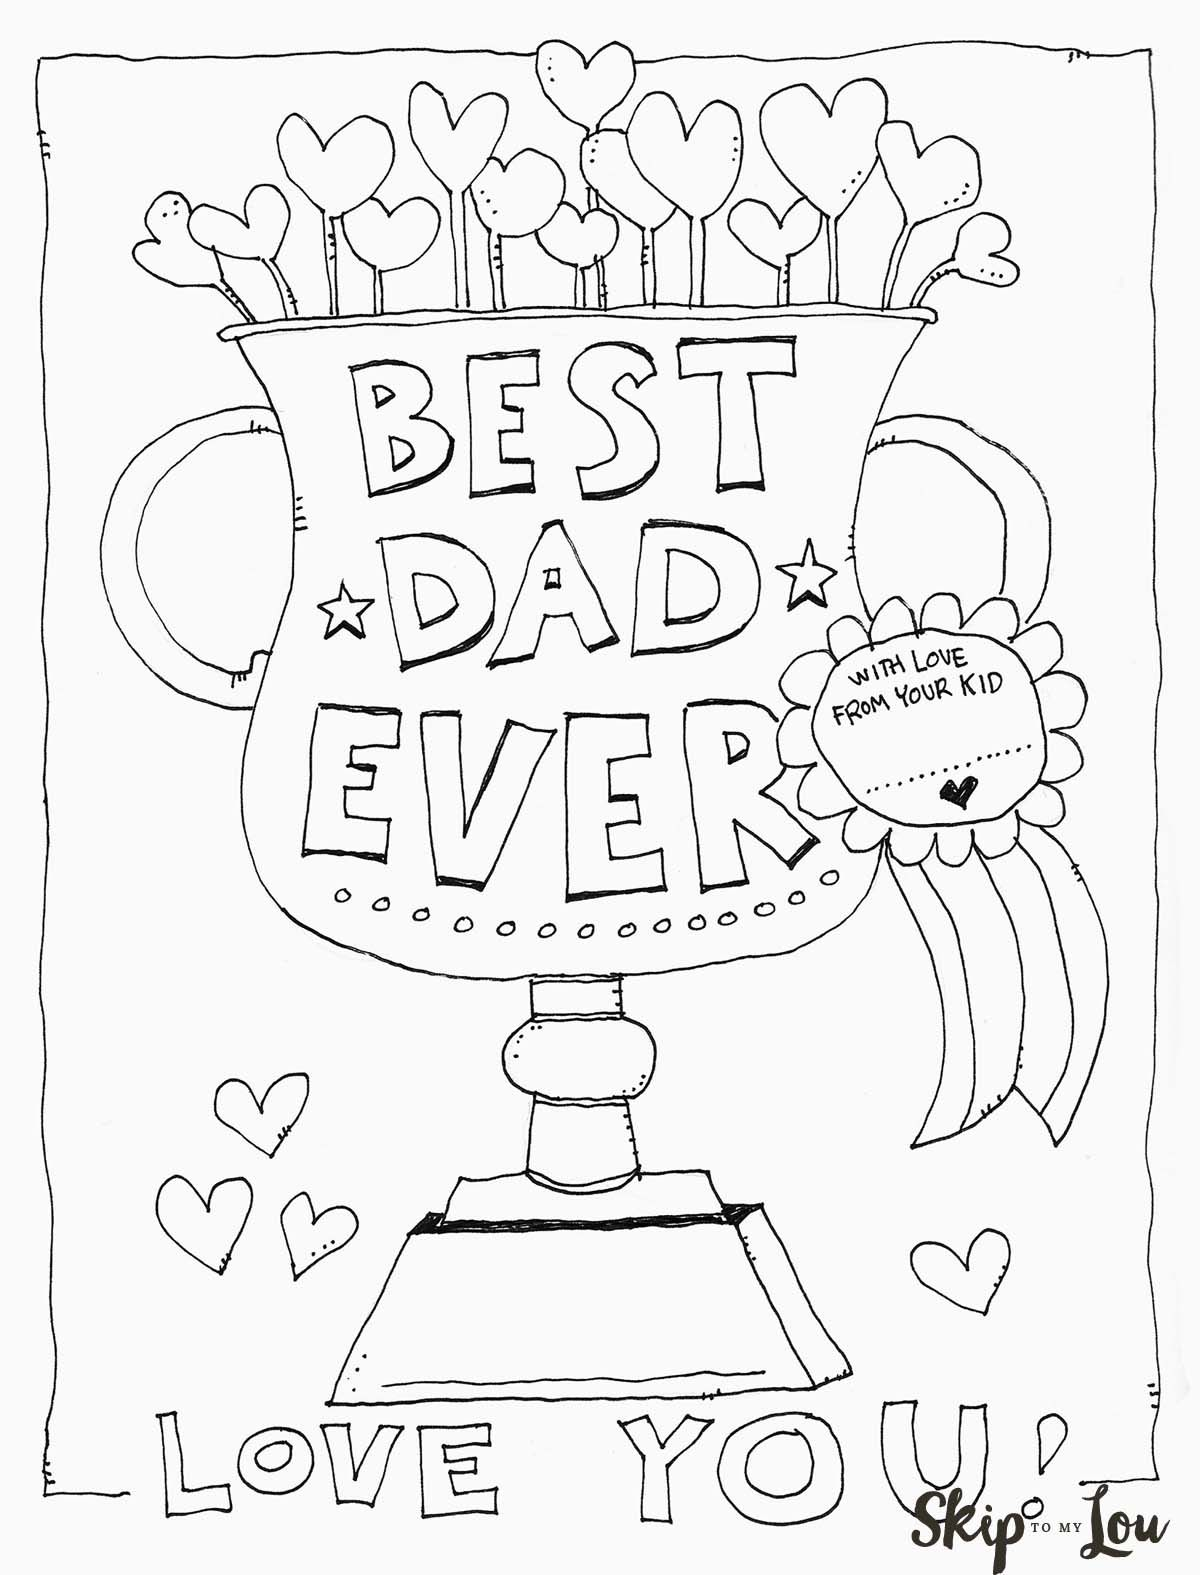 dad coloring page for the best dad skip to my lou - Dad Coloring Pages